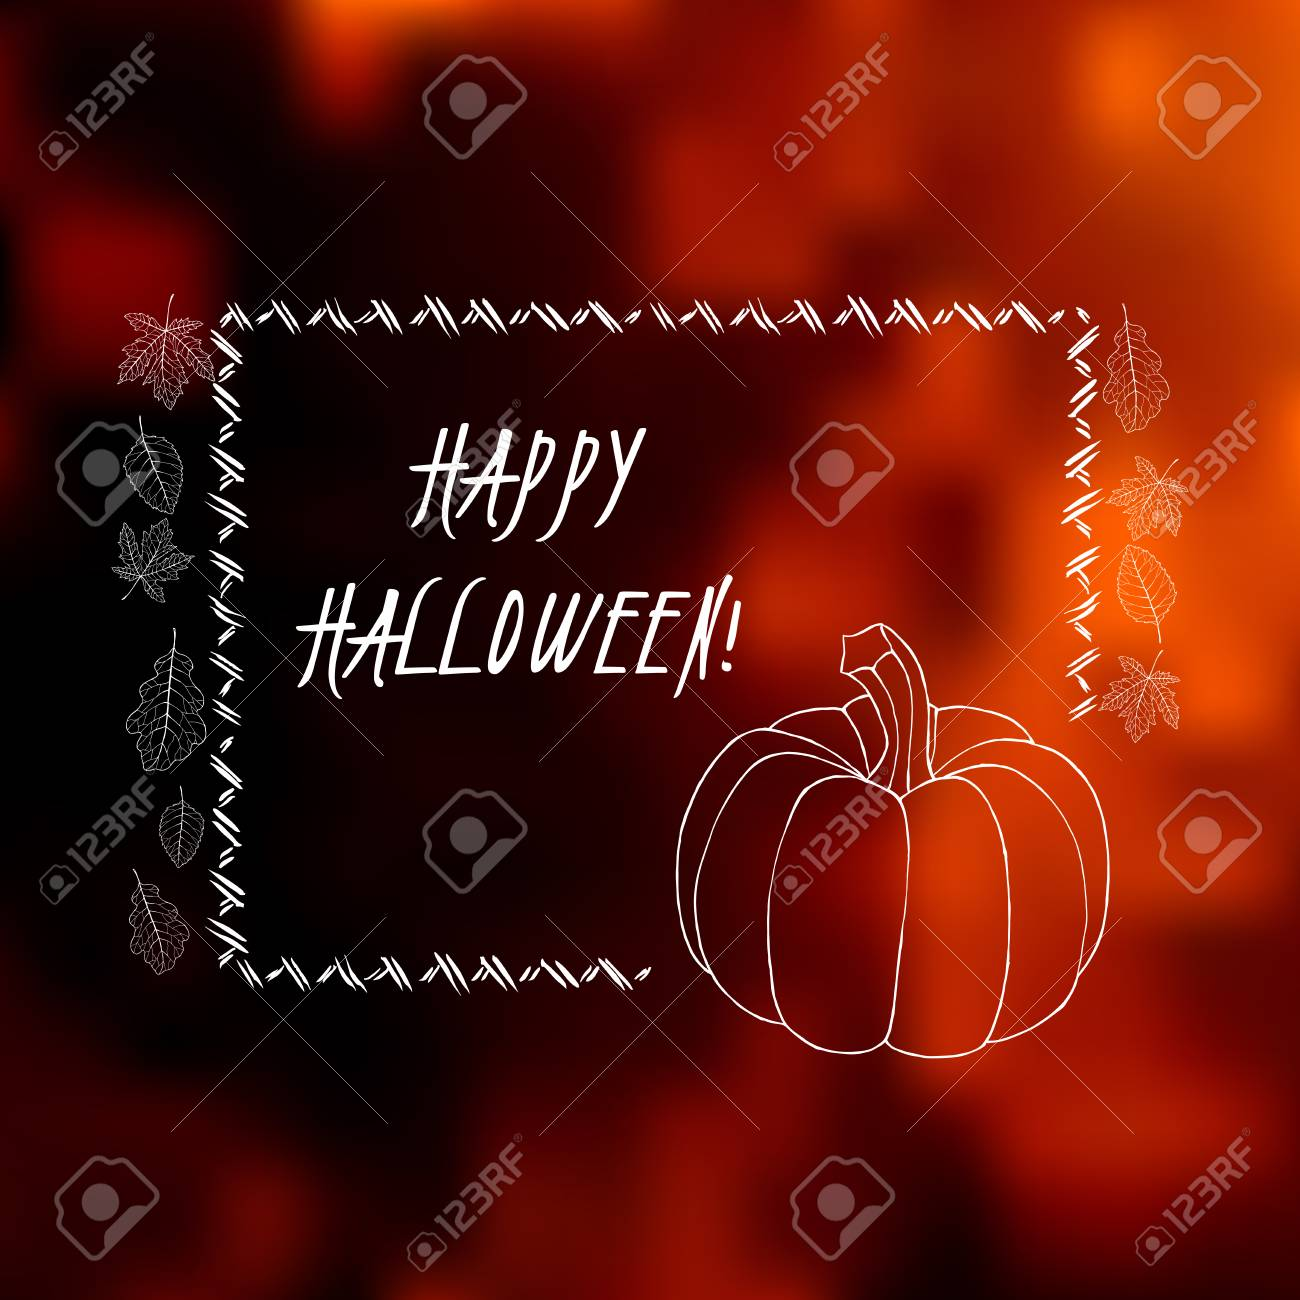 elegant halloween greeting card with blurred background, hand